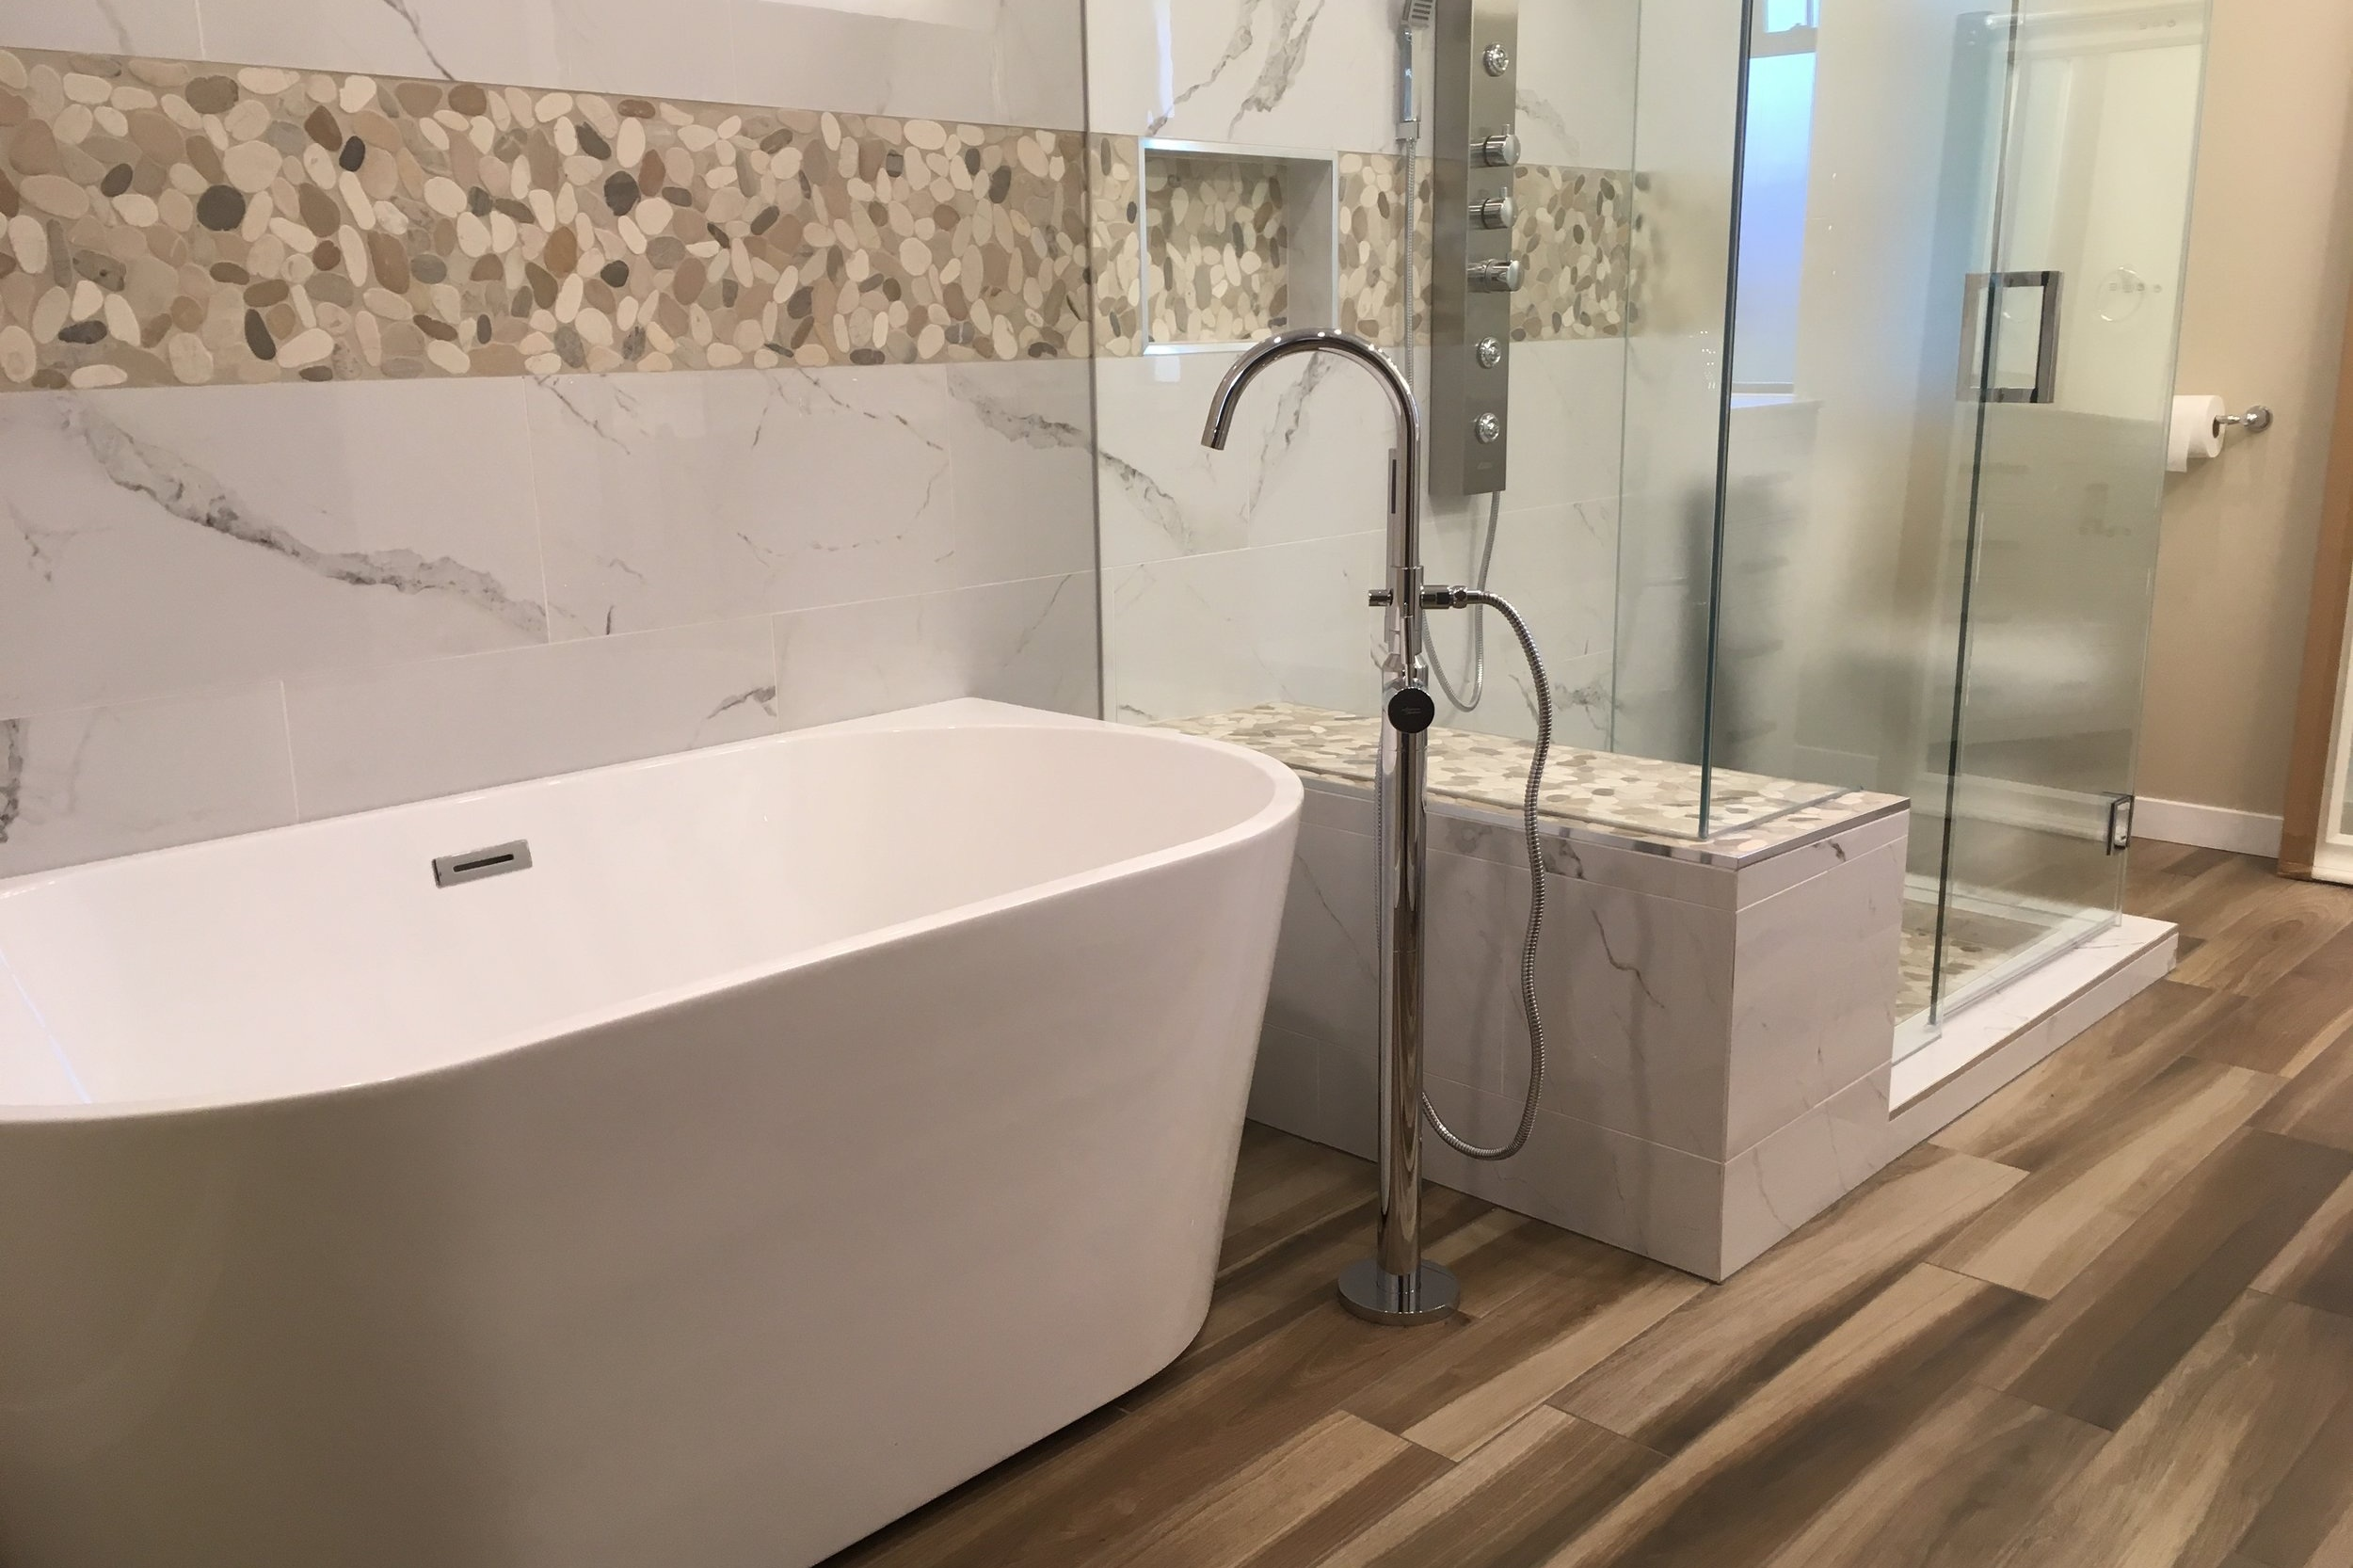 Experienced Bathroom Renovation Contractor In North Vancouver Heilman Renovations North Vancouver Renovation Contractor